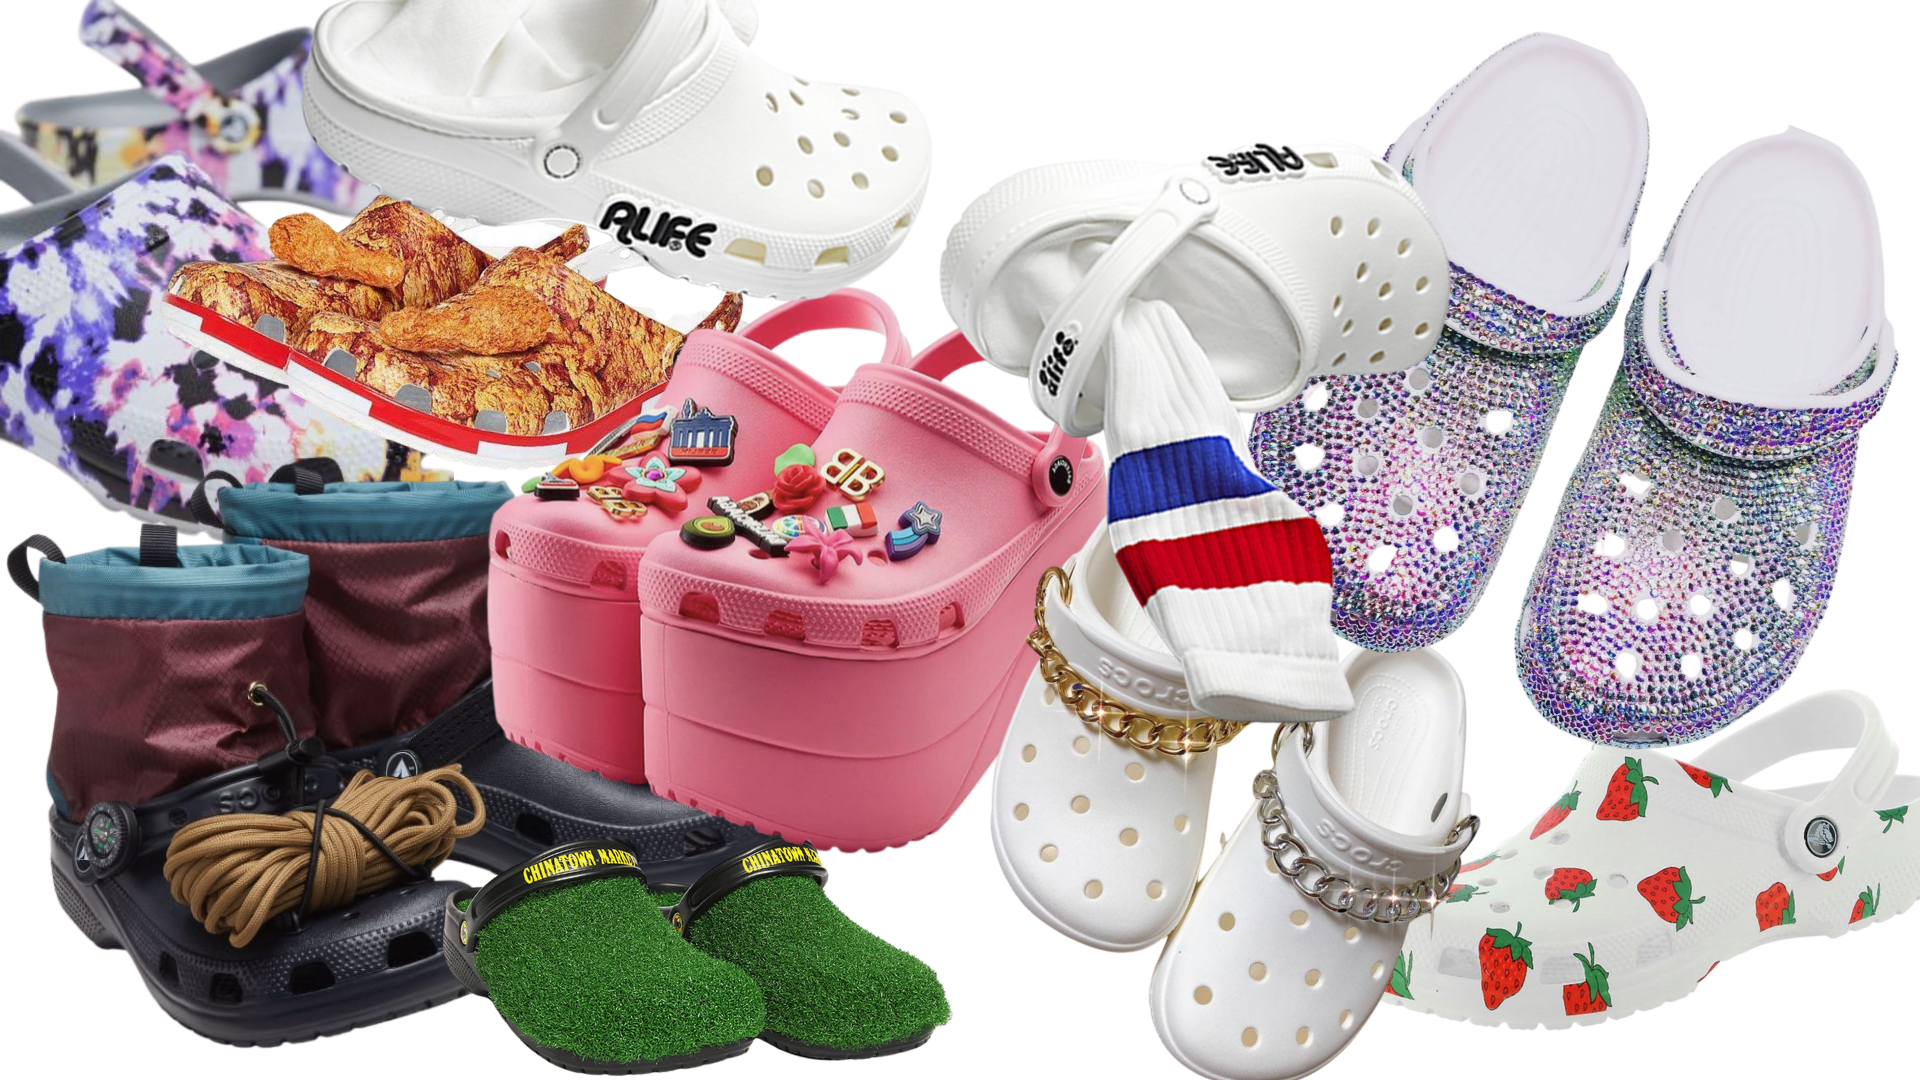 Hot or Not: CROCS (Spoiler Alert They're Hot and Here's 5 Ways to Wear Them)